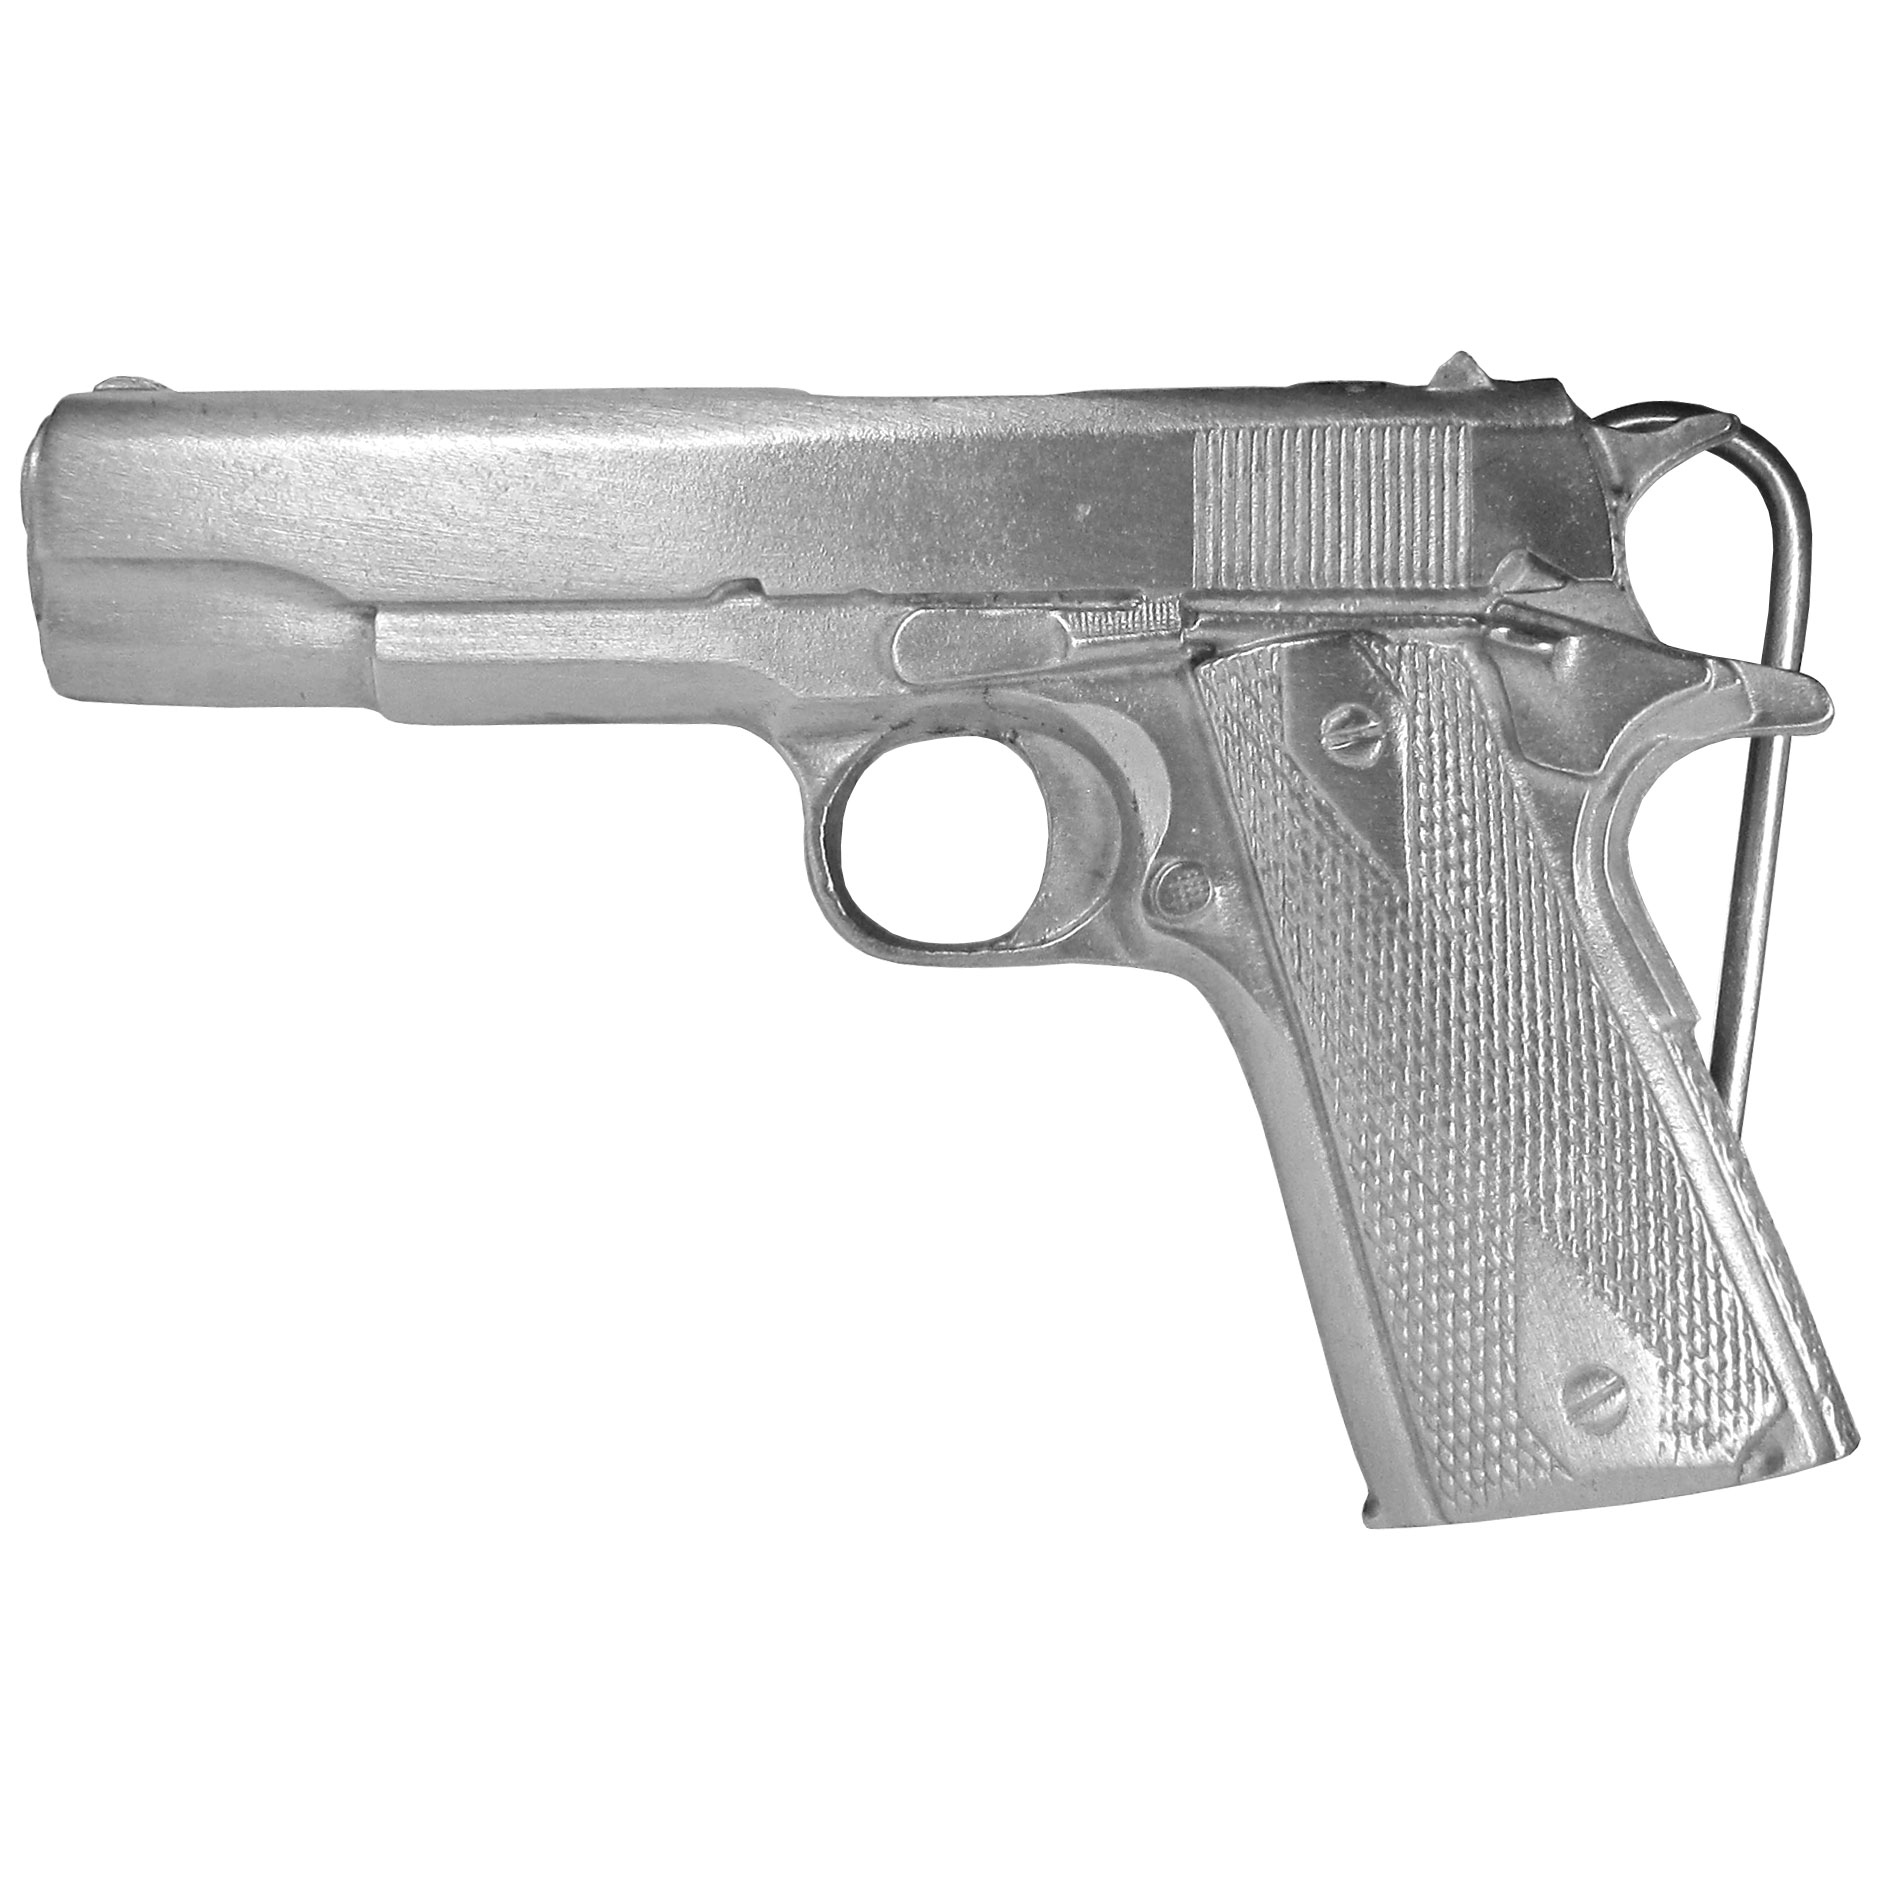 "Automotic Pistol Antiqued Belt Buckle - This belt buckle is an automatic pistol. This gun is made of exquisitely carved, fully cast metal with a standard bale that fits up to 2"" belts."